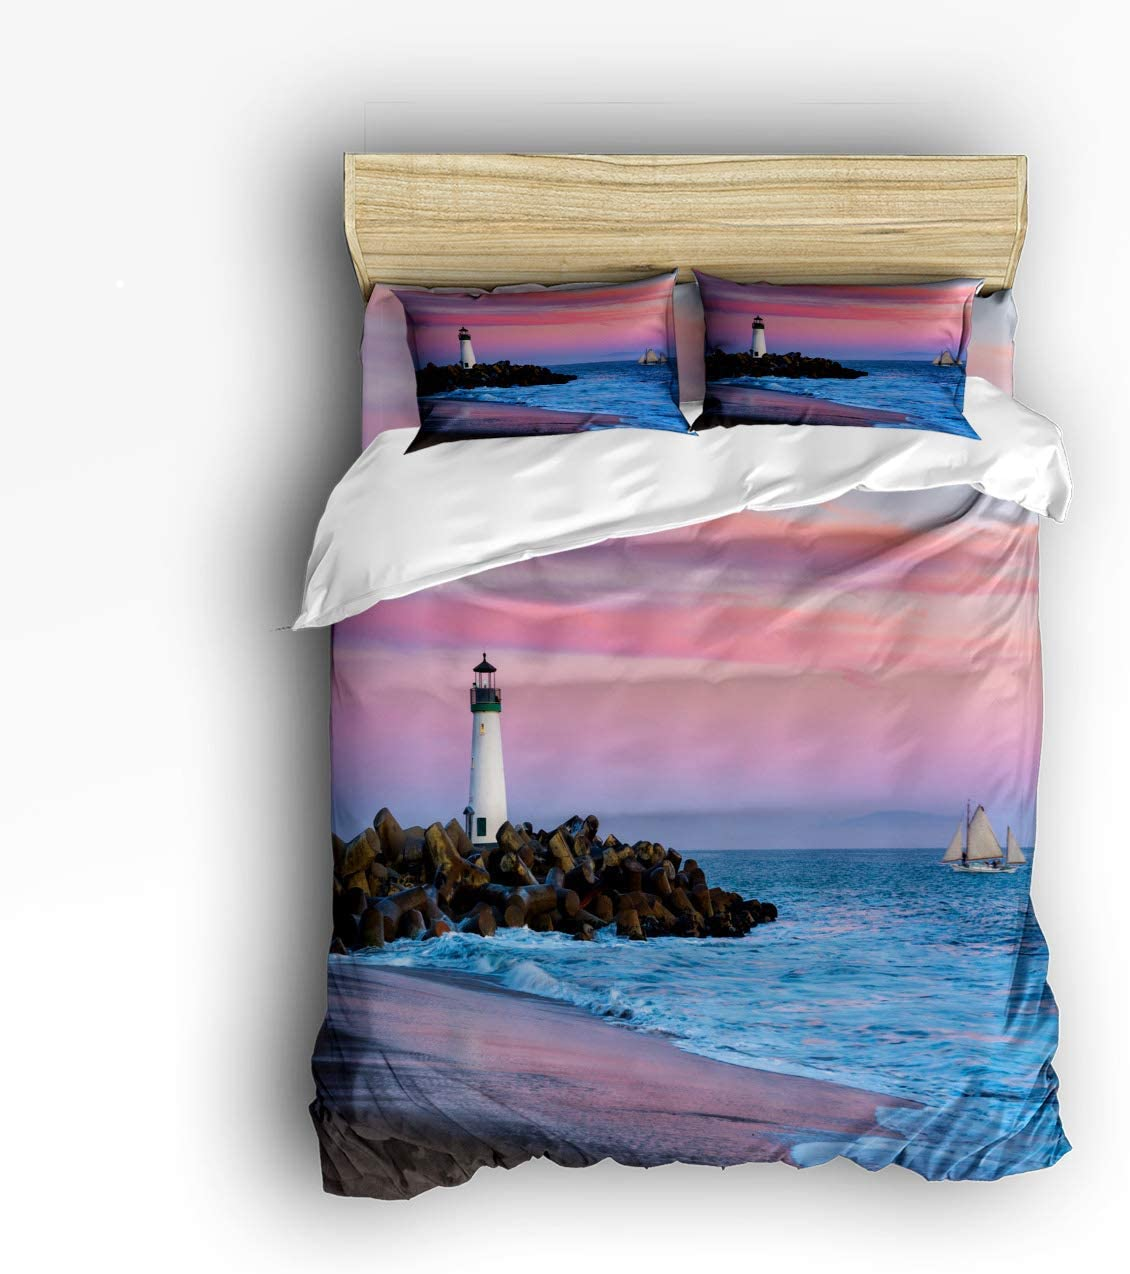 COVASA Luxury Max 51% OFF 4-Piece Bedding Set Beach Low price Oce on Sunset Lighthouse